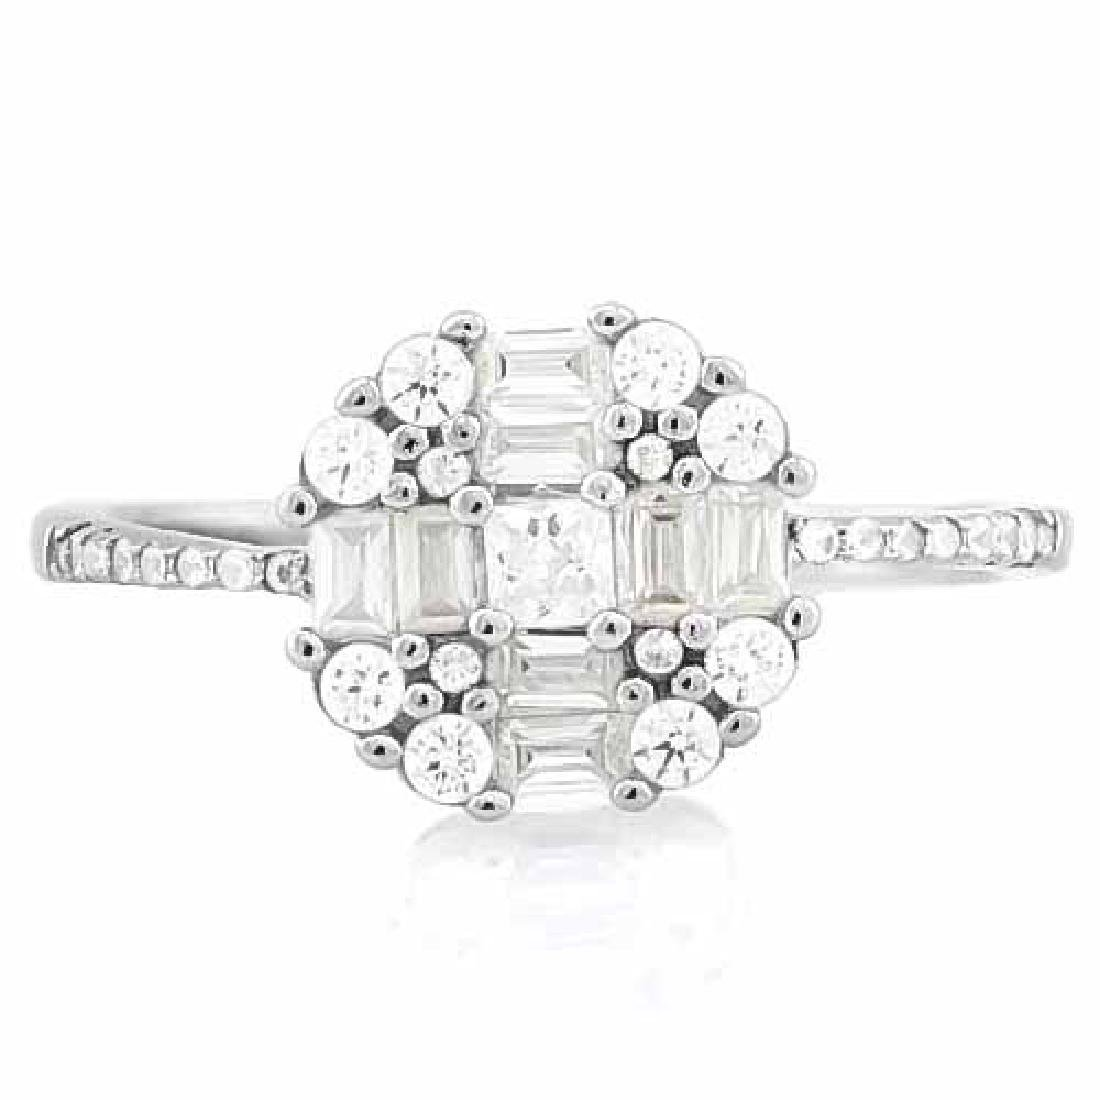 1 4/5 CARAT (25 PCS) FLAWLESS CREATED DIAMOND 925 STERL